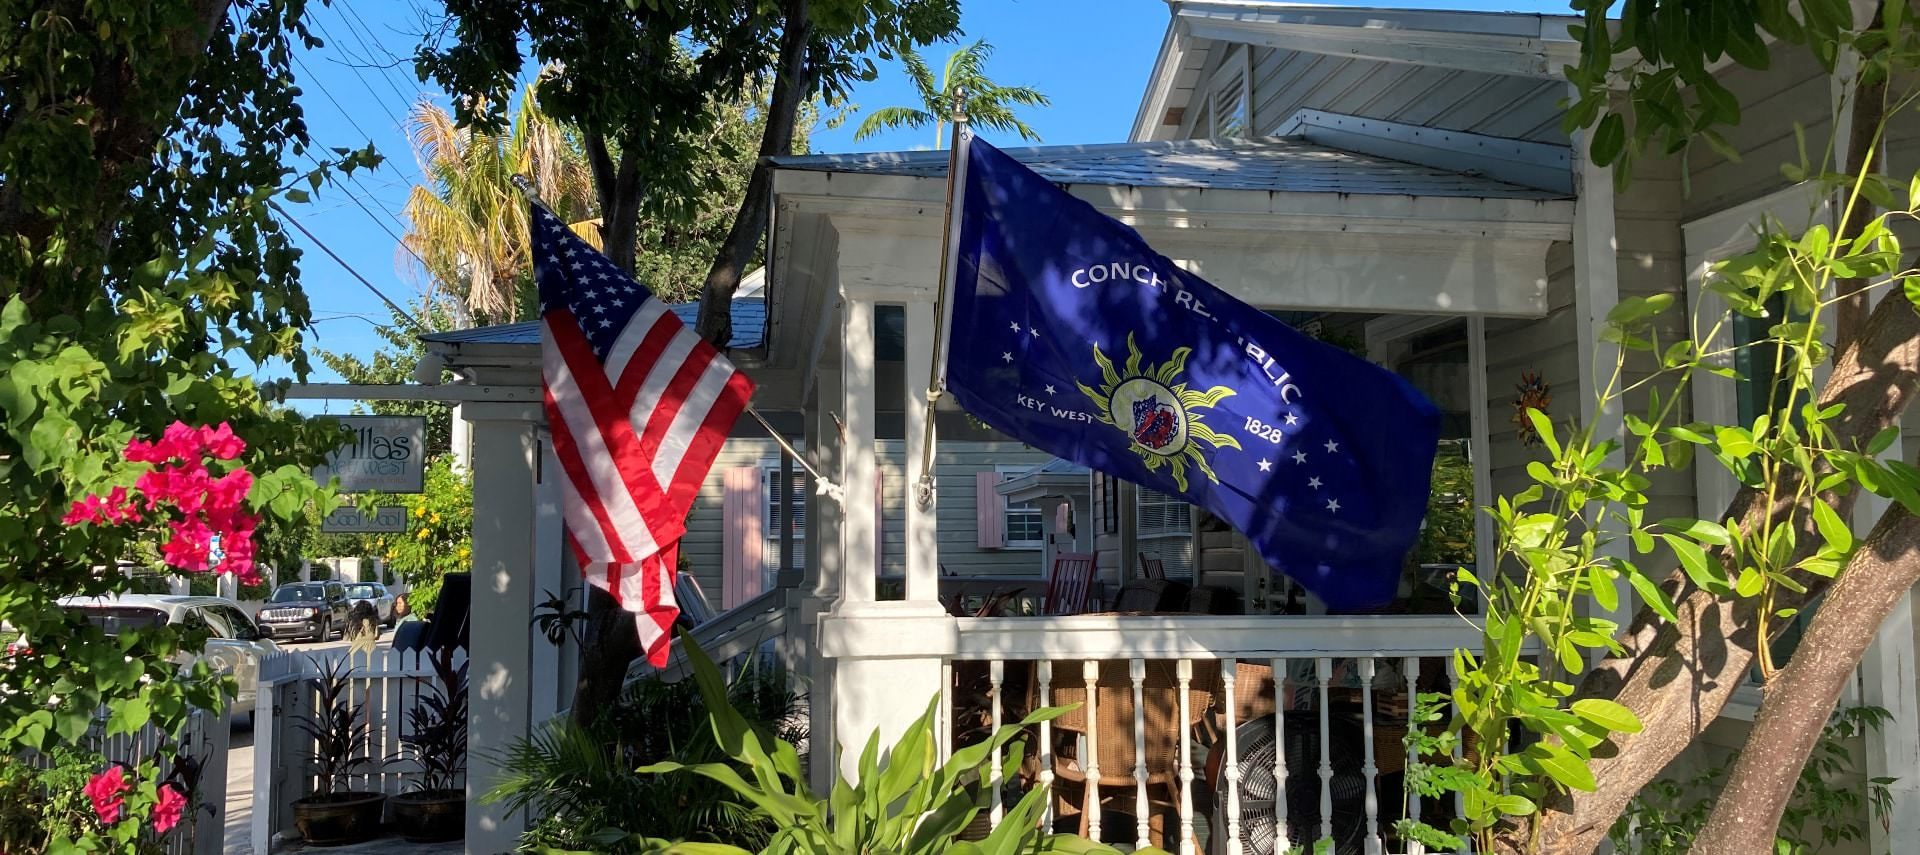 Front entrance of property with front porch, United States flag, Key West flag, and surrounded by greenery